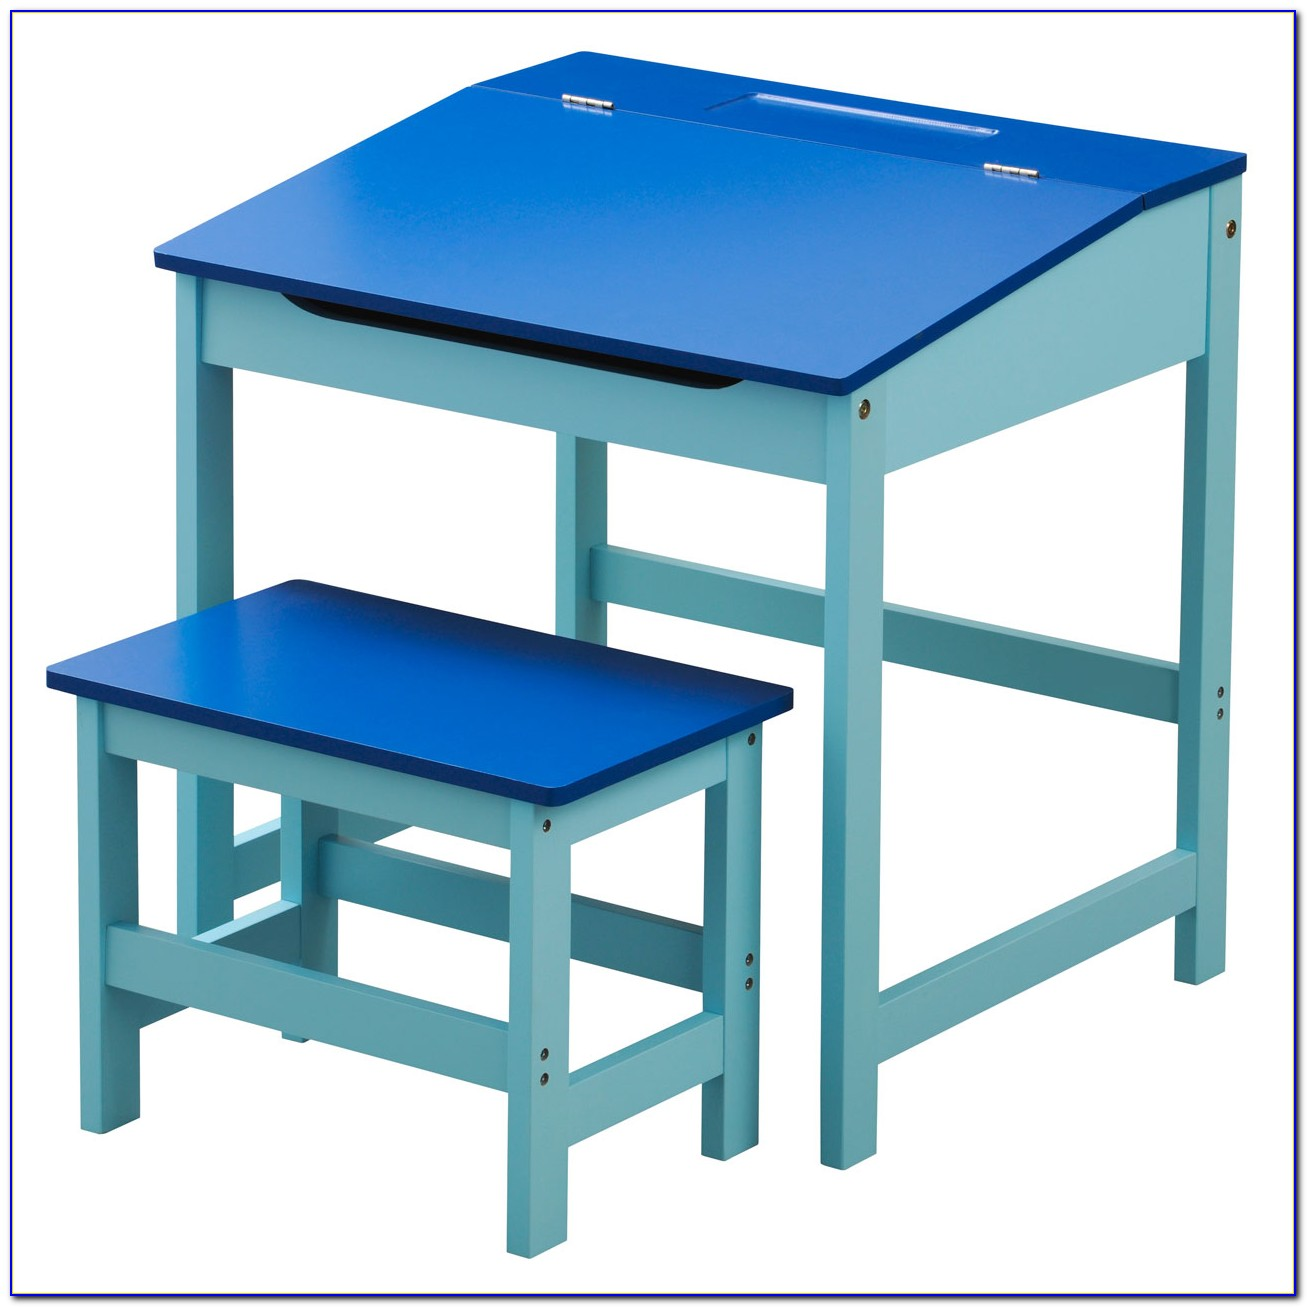 Children's School Chairs With Arms